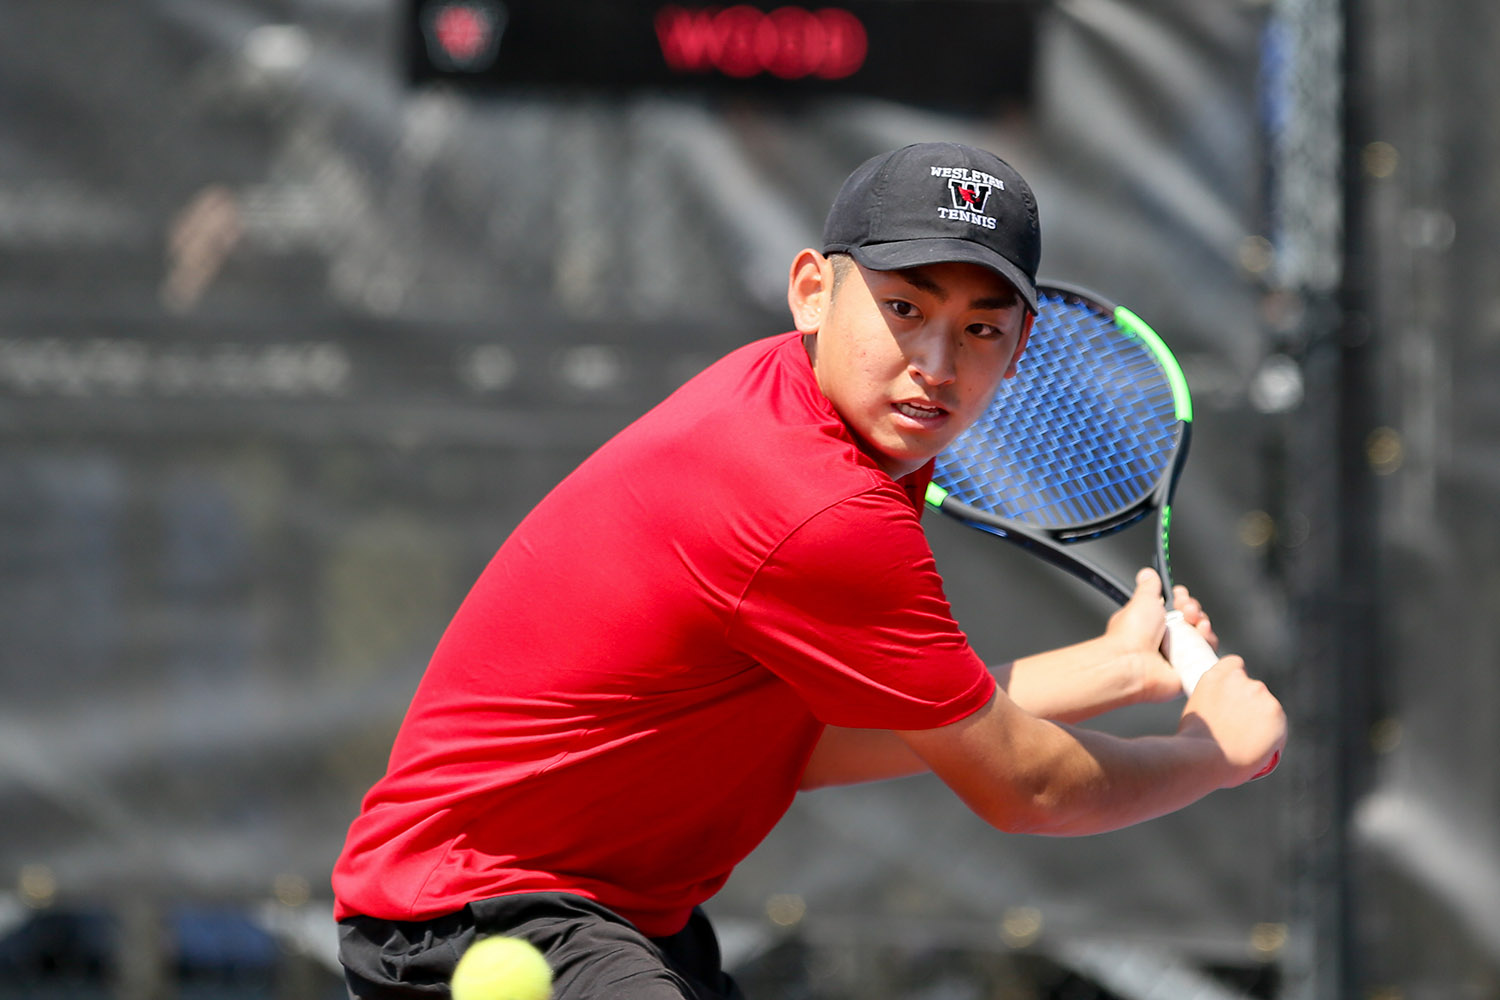 Steven Chen (men's tennis). The softball one should be credited to Jonas Powell '18, and the tennis one should be credited to Christopher Winslow.